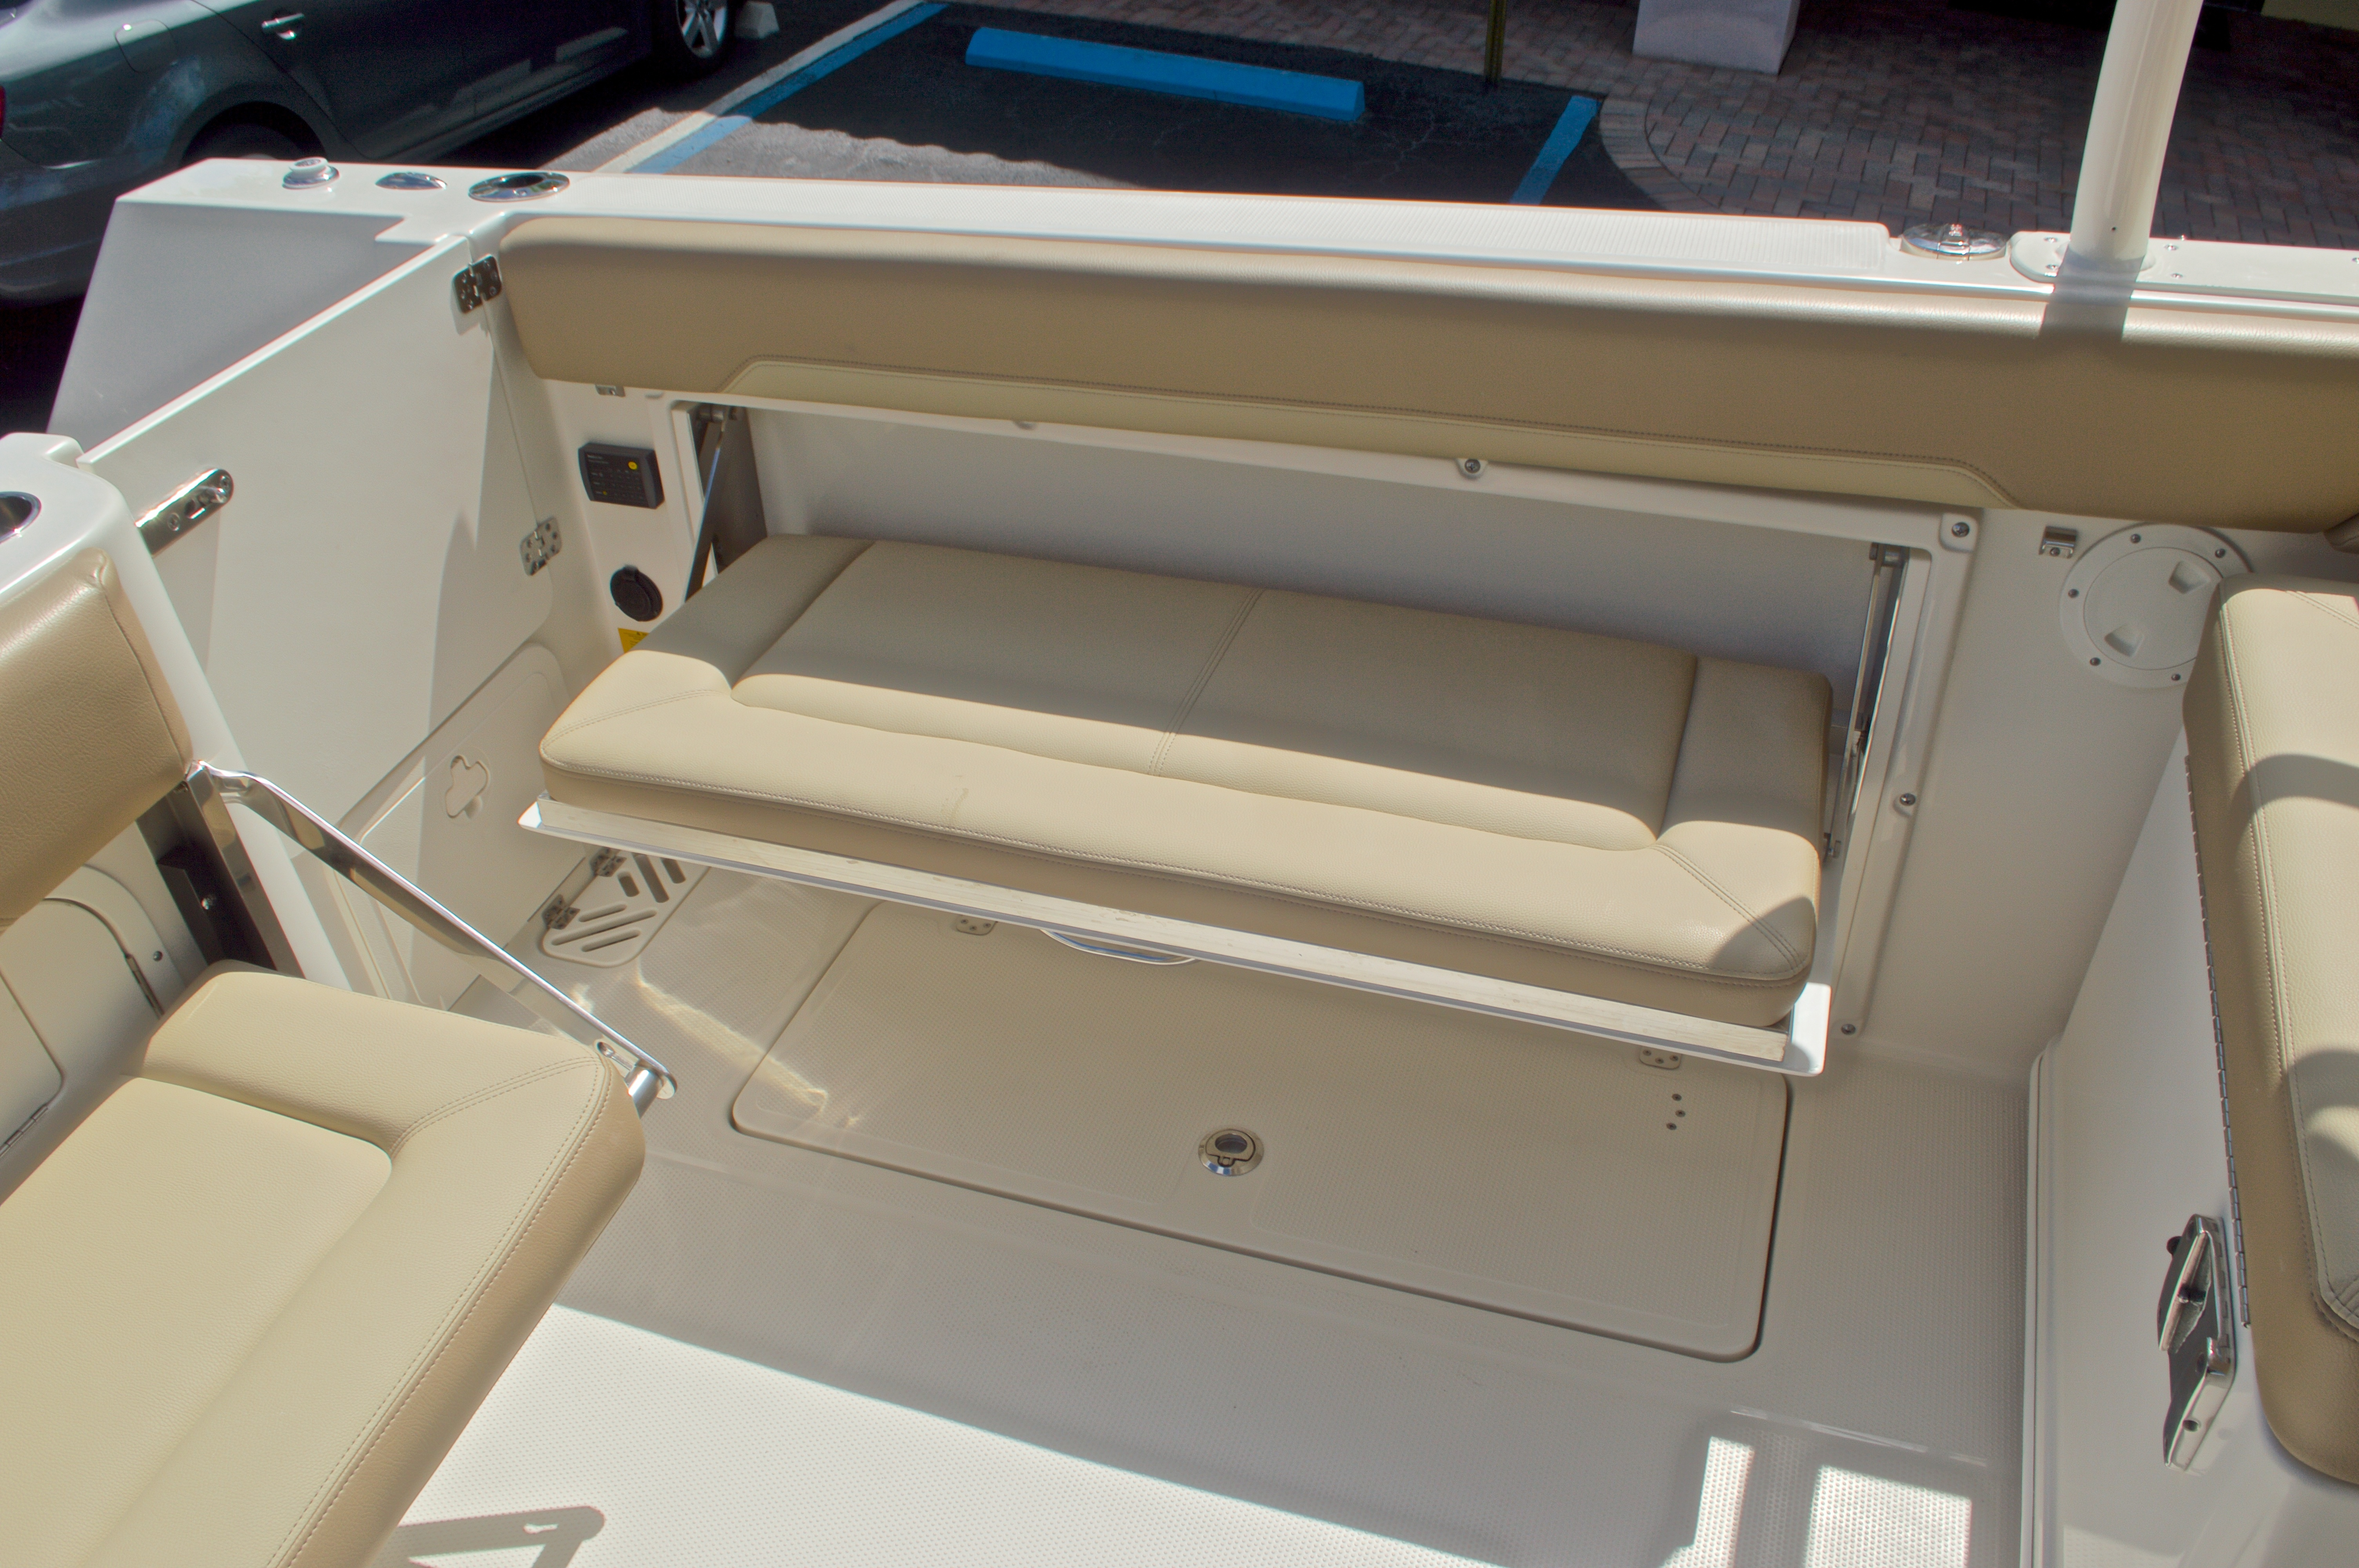 Thumbnail 19 for New 2017 Sailfish 275 Dual Console boat for sale in Vero Beach, FL